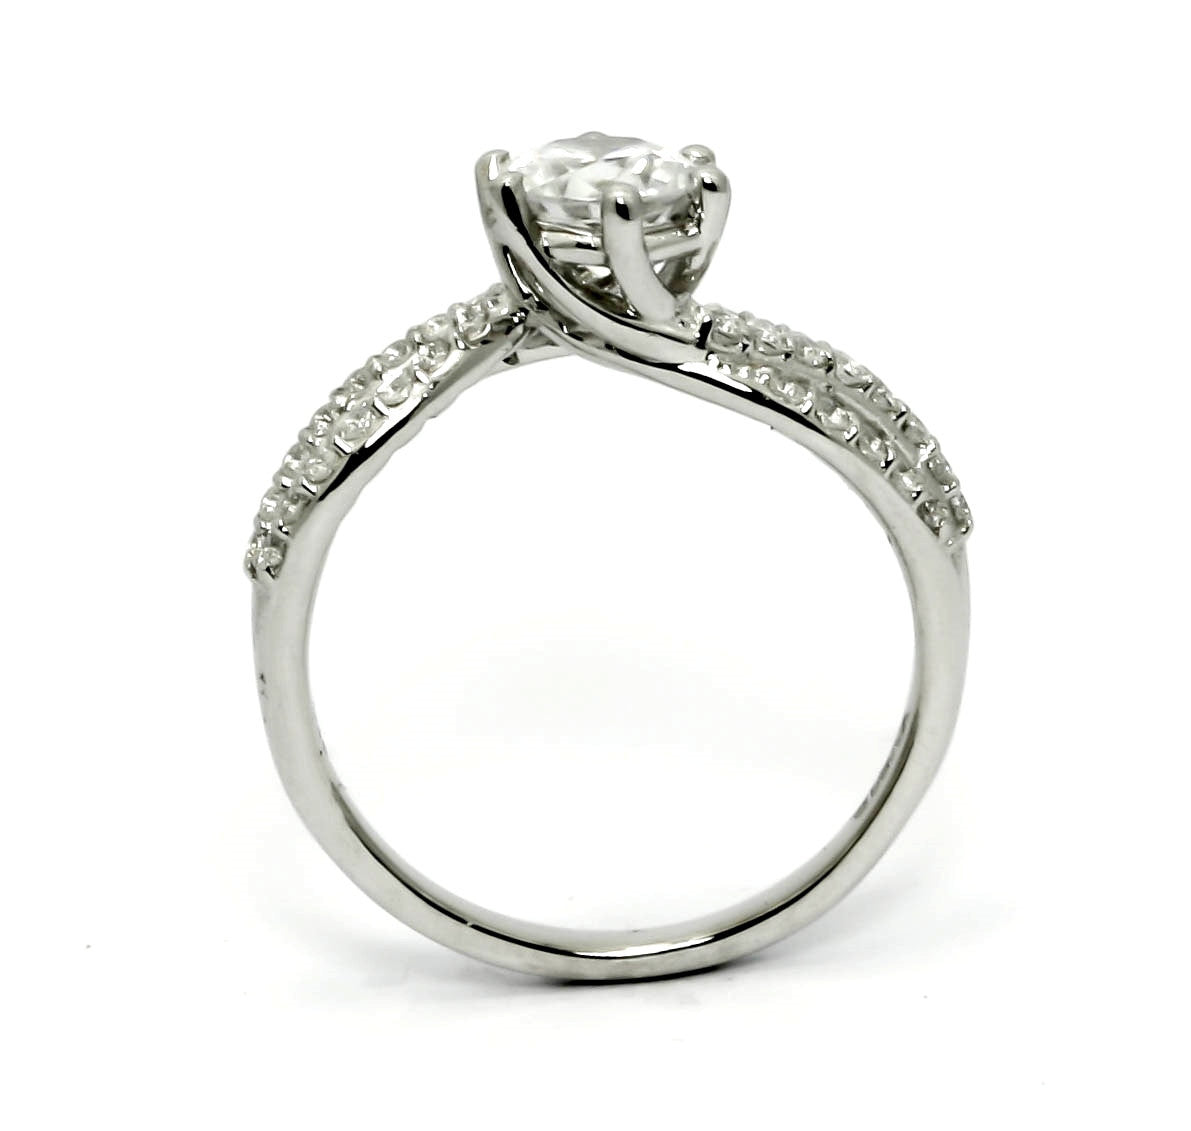 "Unique 3 Line Shank Diamond Ring Engagement And Wedding Set, 6.5 mm ""Forever Brilliant"" Moissanite Anniversary Ring - FBY11575"